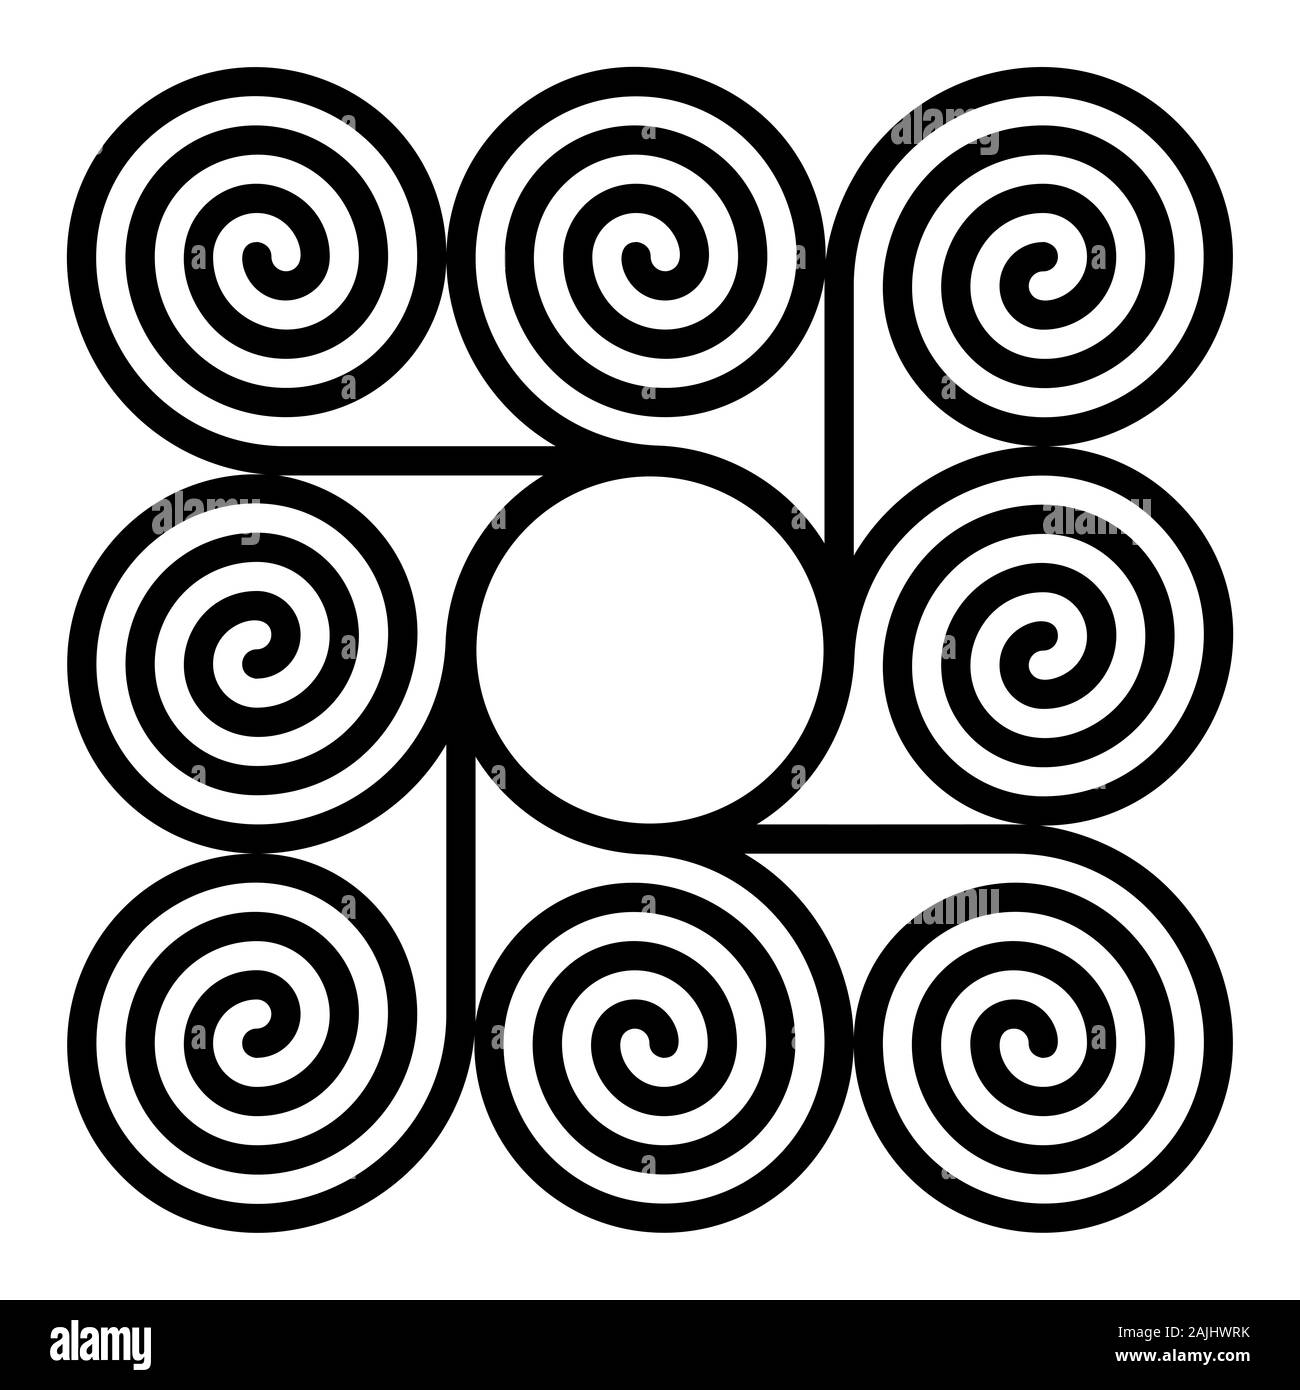 Eight arithmetic spirals around a circle forming a square shaped pattern. Archimedean spirals of same intervals connected with a circle in the centre. Stock Photo